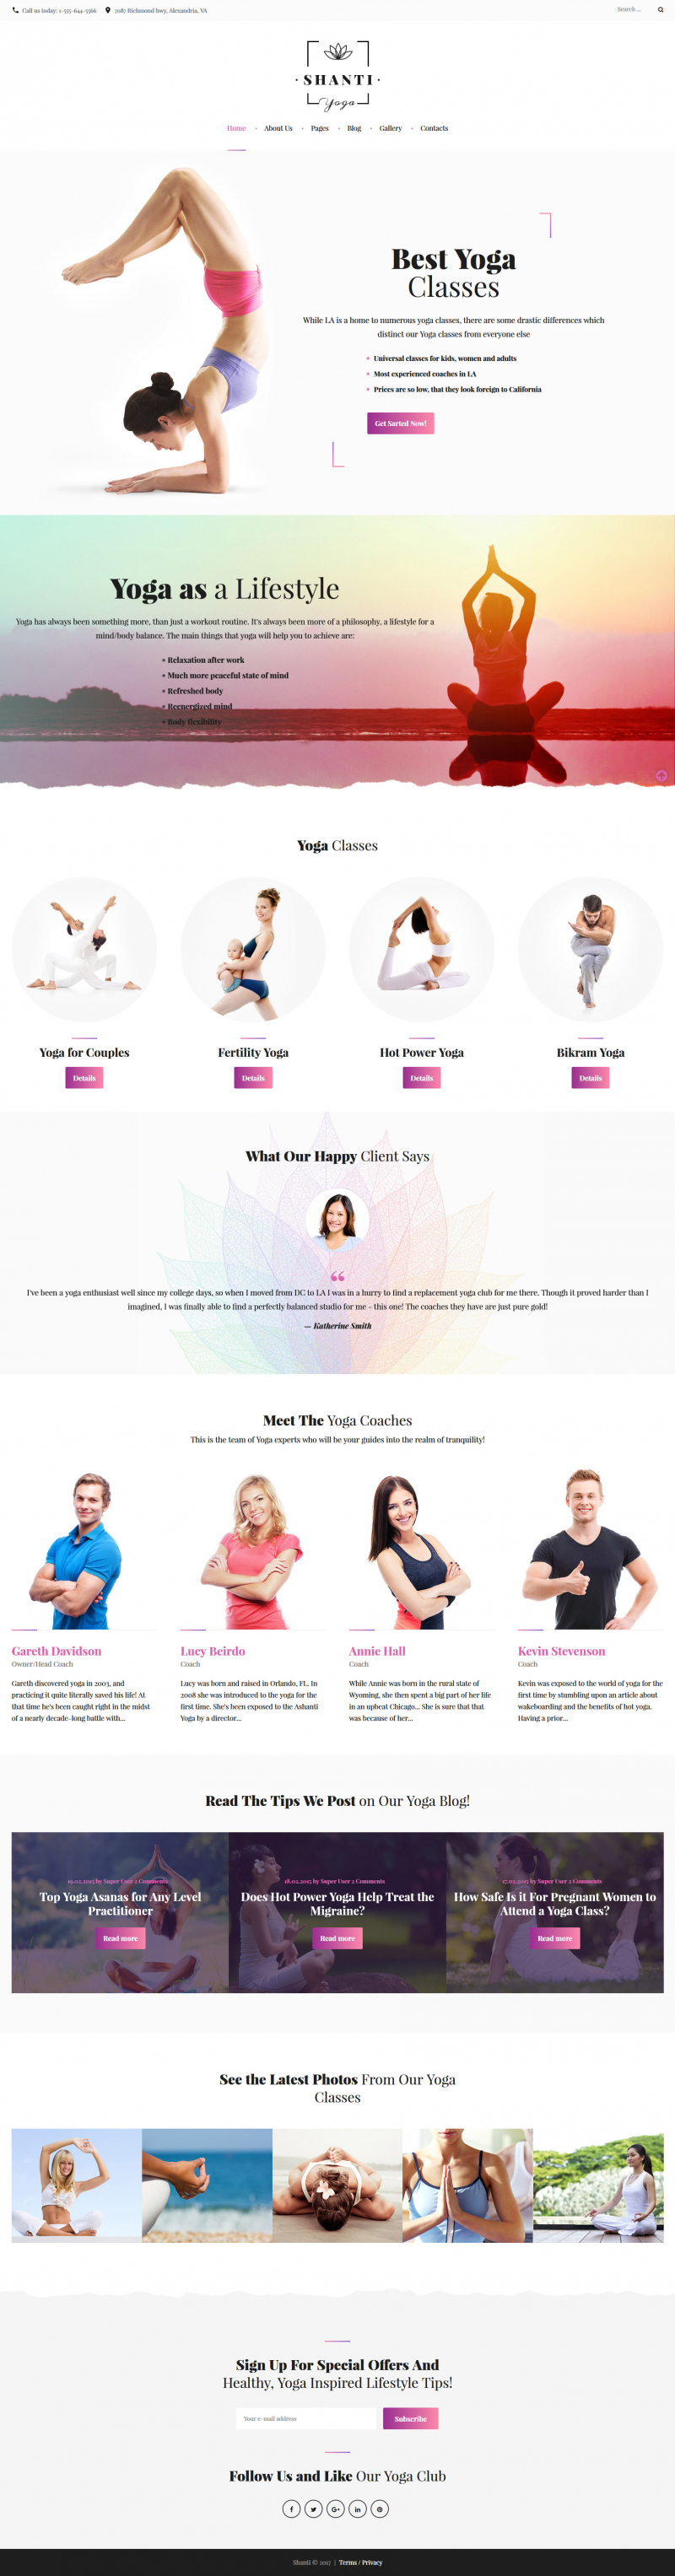 Shanti - Yoga Classes Responsive Joomla Template